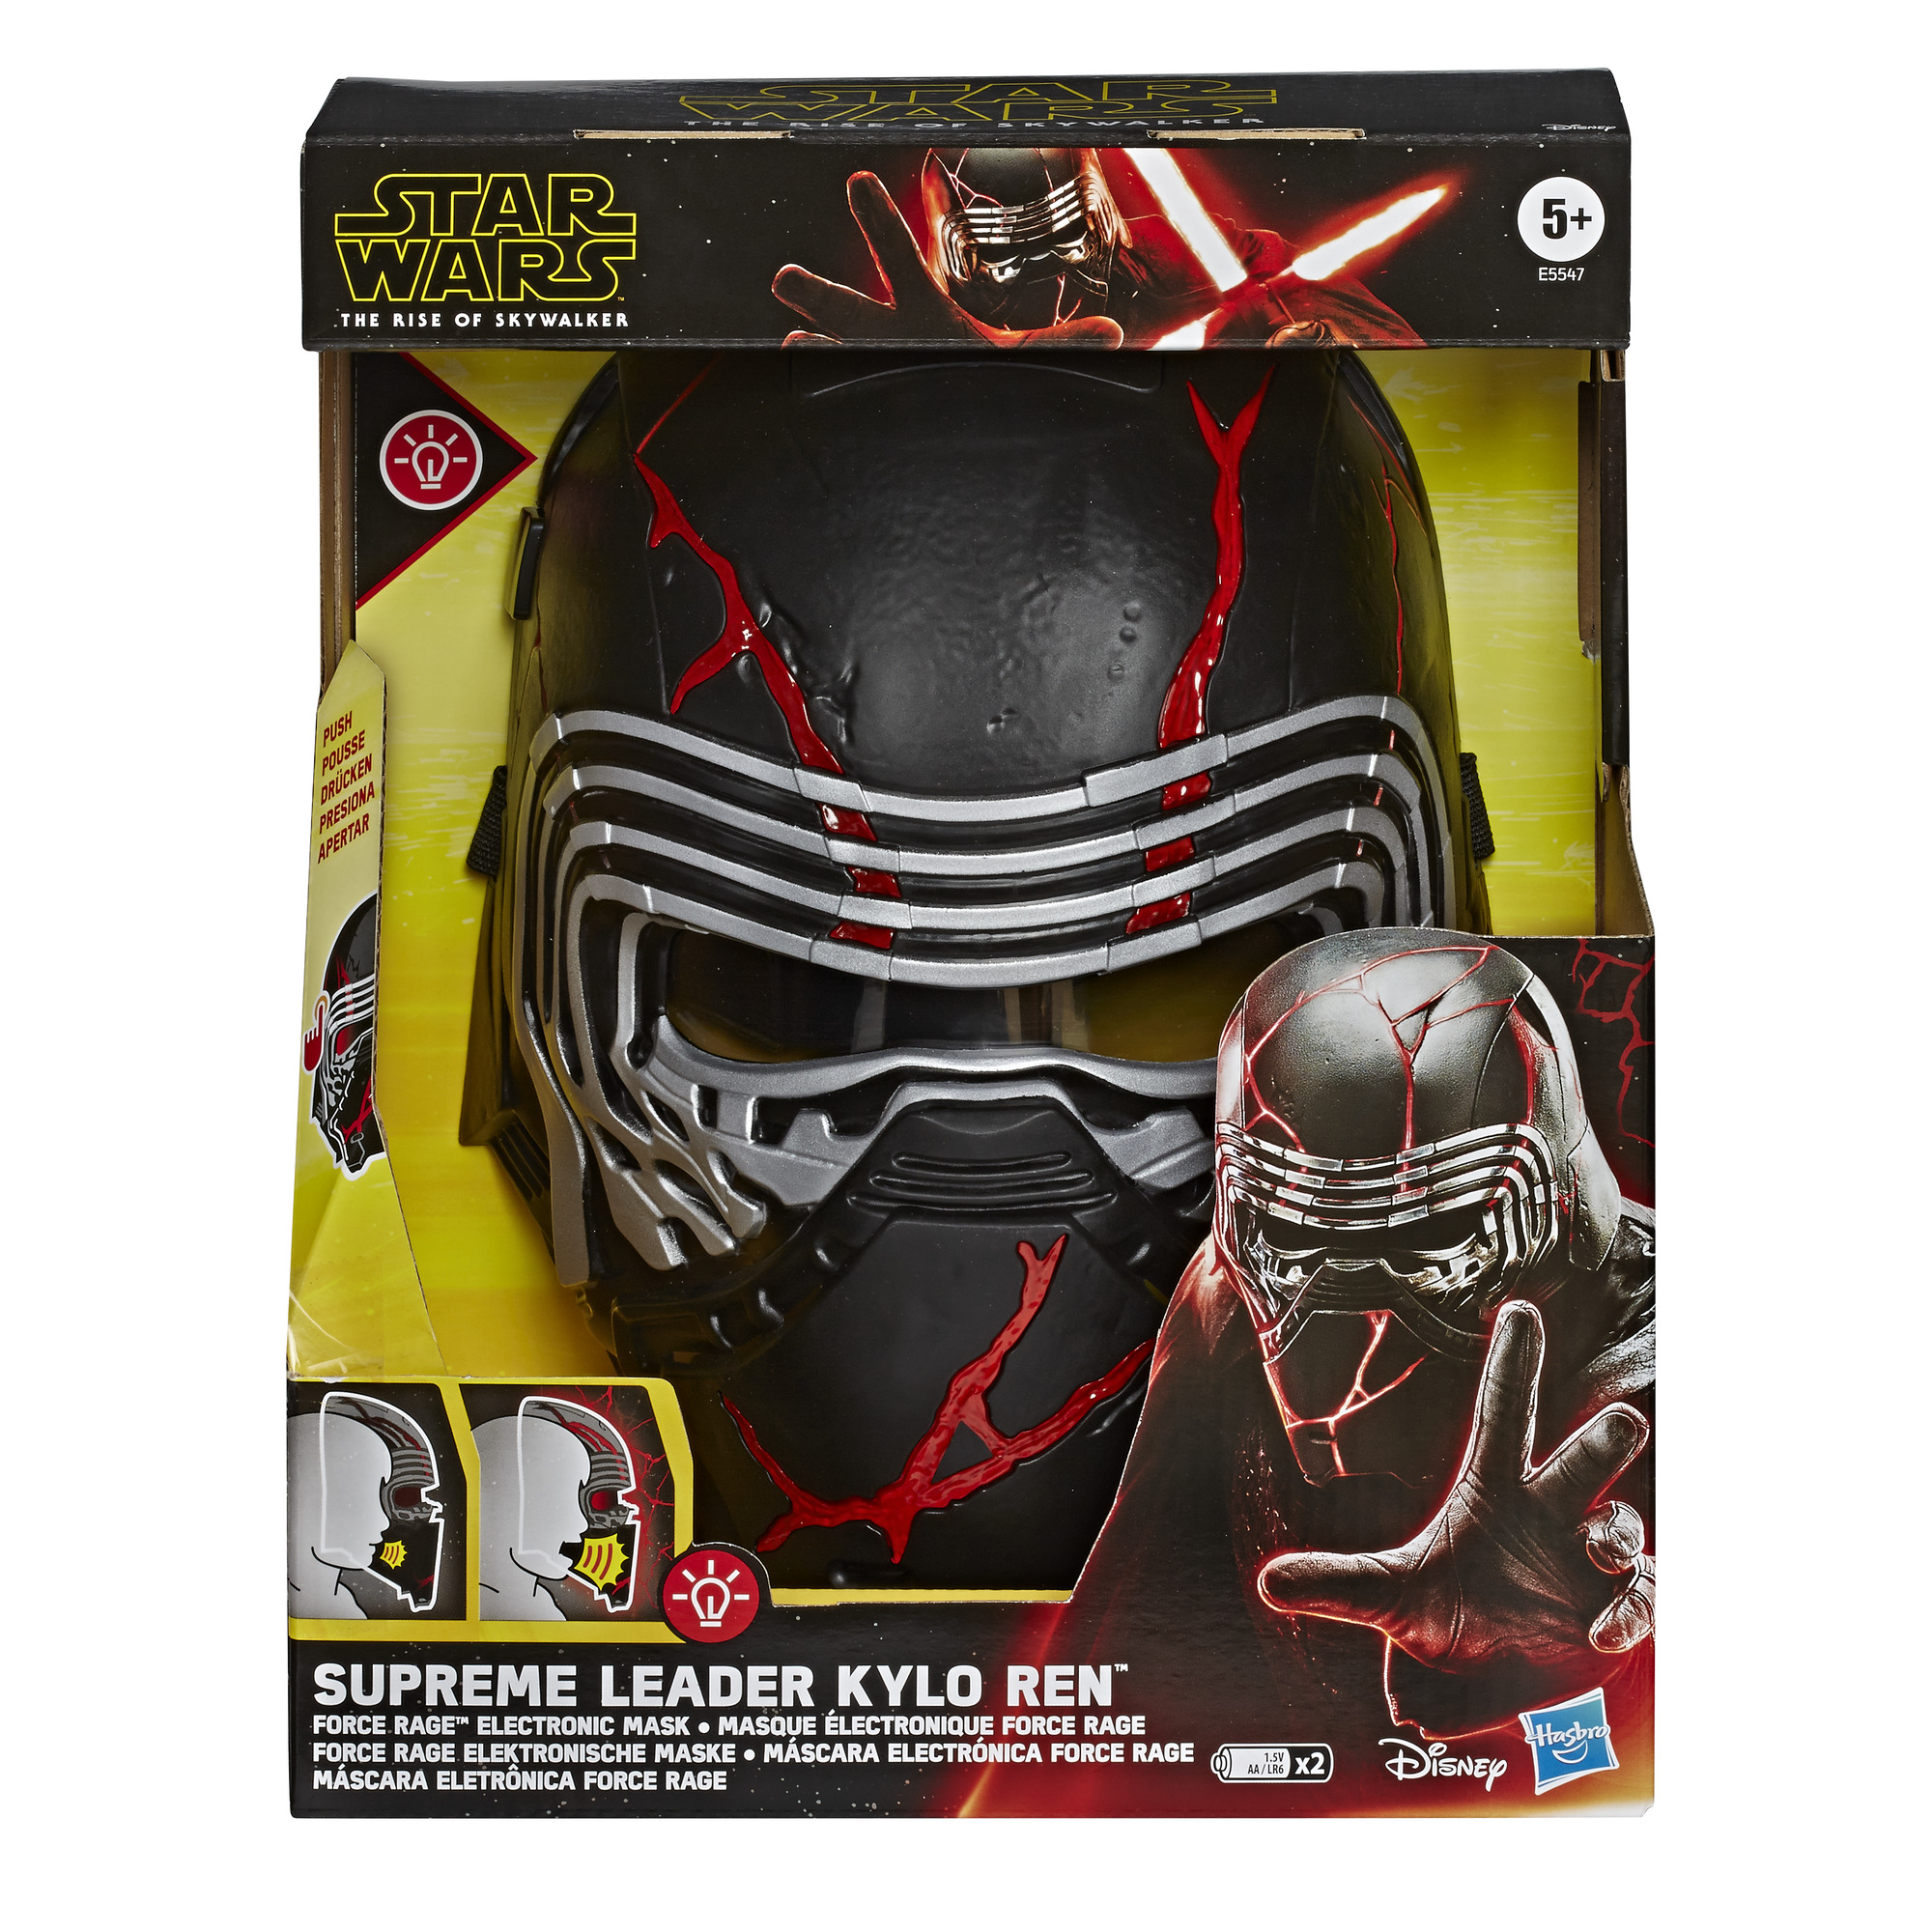 TROS Supreme Leader Kylo Ren Voice Changing Mask 1